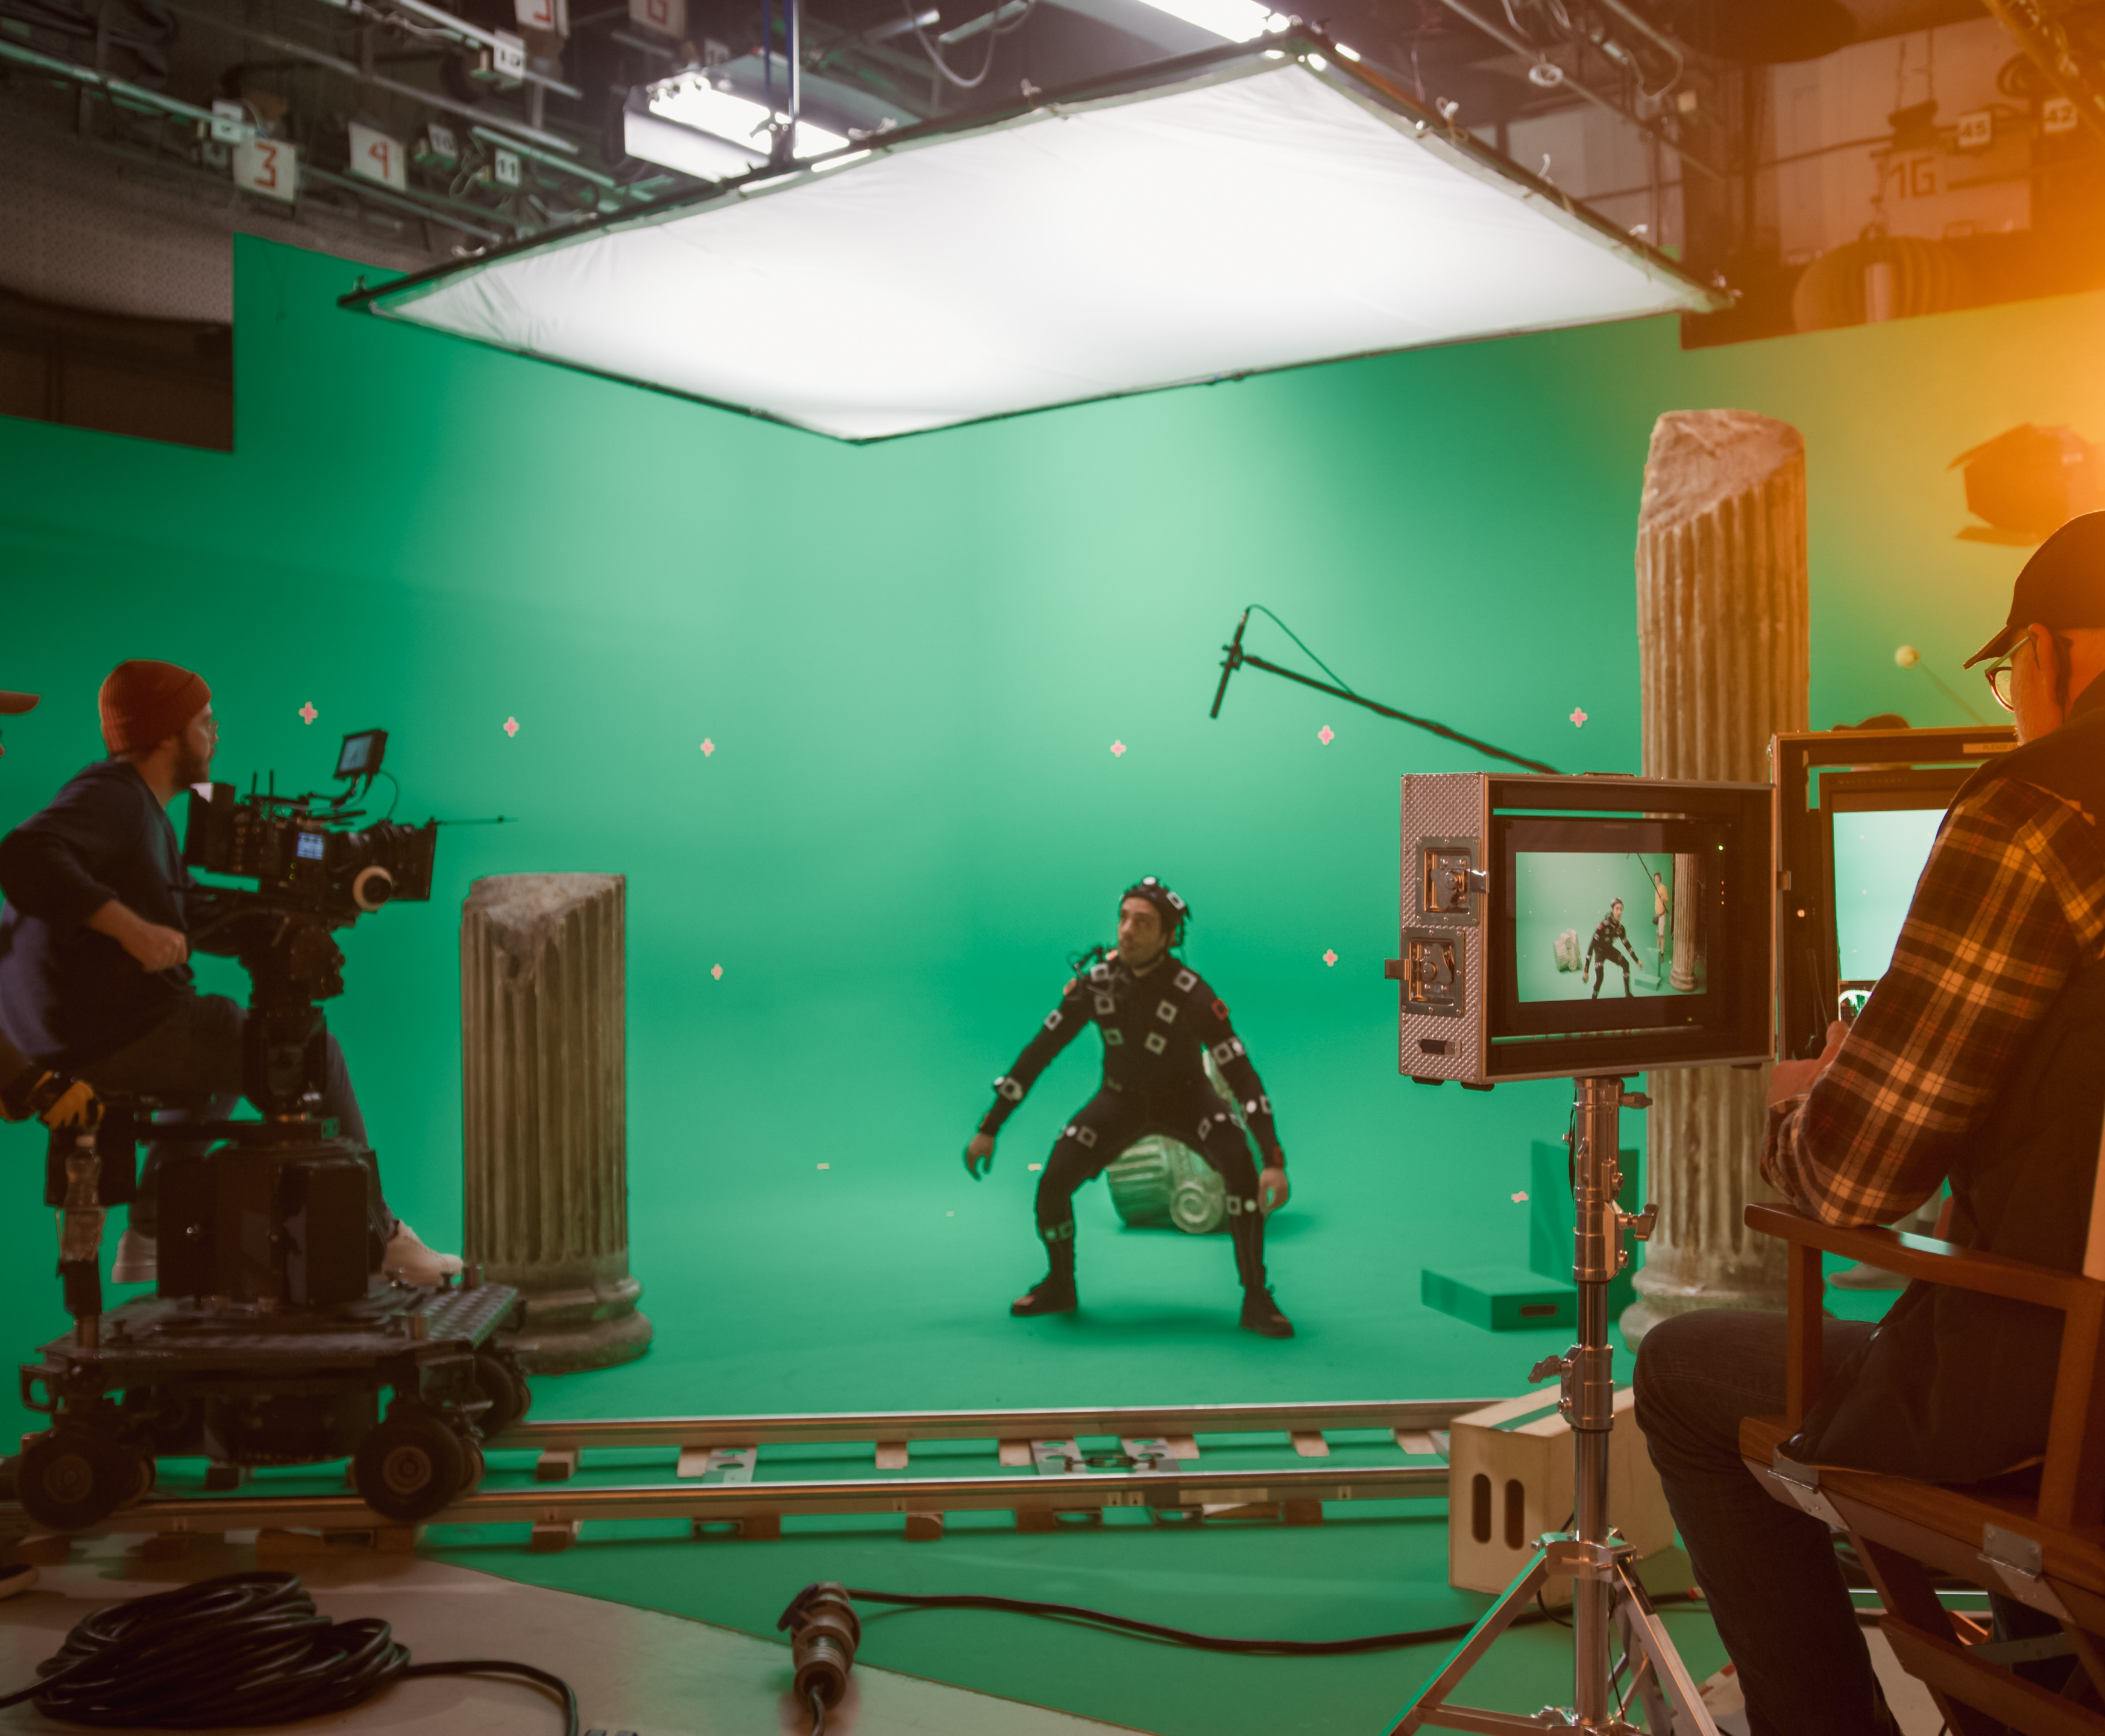 In-the-Big-Film-Studio-Professional-Crew-Shooting-Blockbuster-Movie.-Director-Commands-Cameraman-to-Start-shooting-Green-Screen-CGI-Scene-with-Actor-Wearing-Motion-Capture-Suit-and-Head-Rig-1265157445_5120x2880